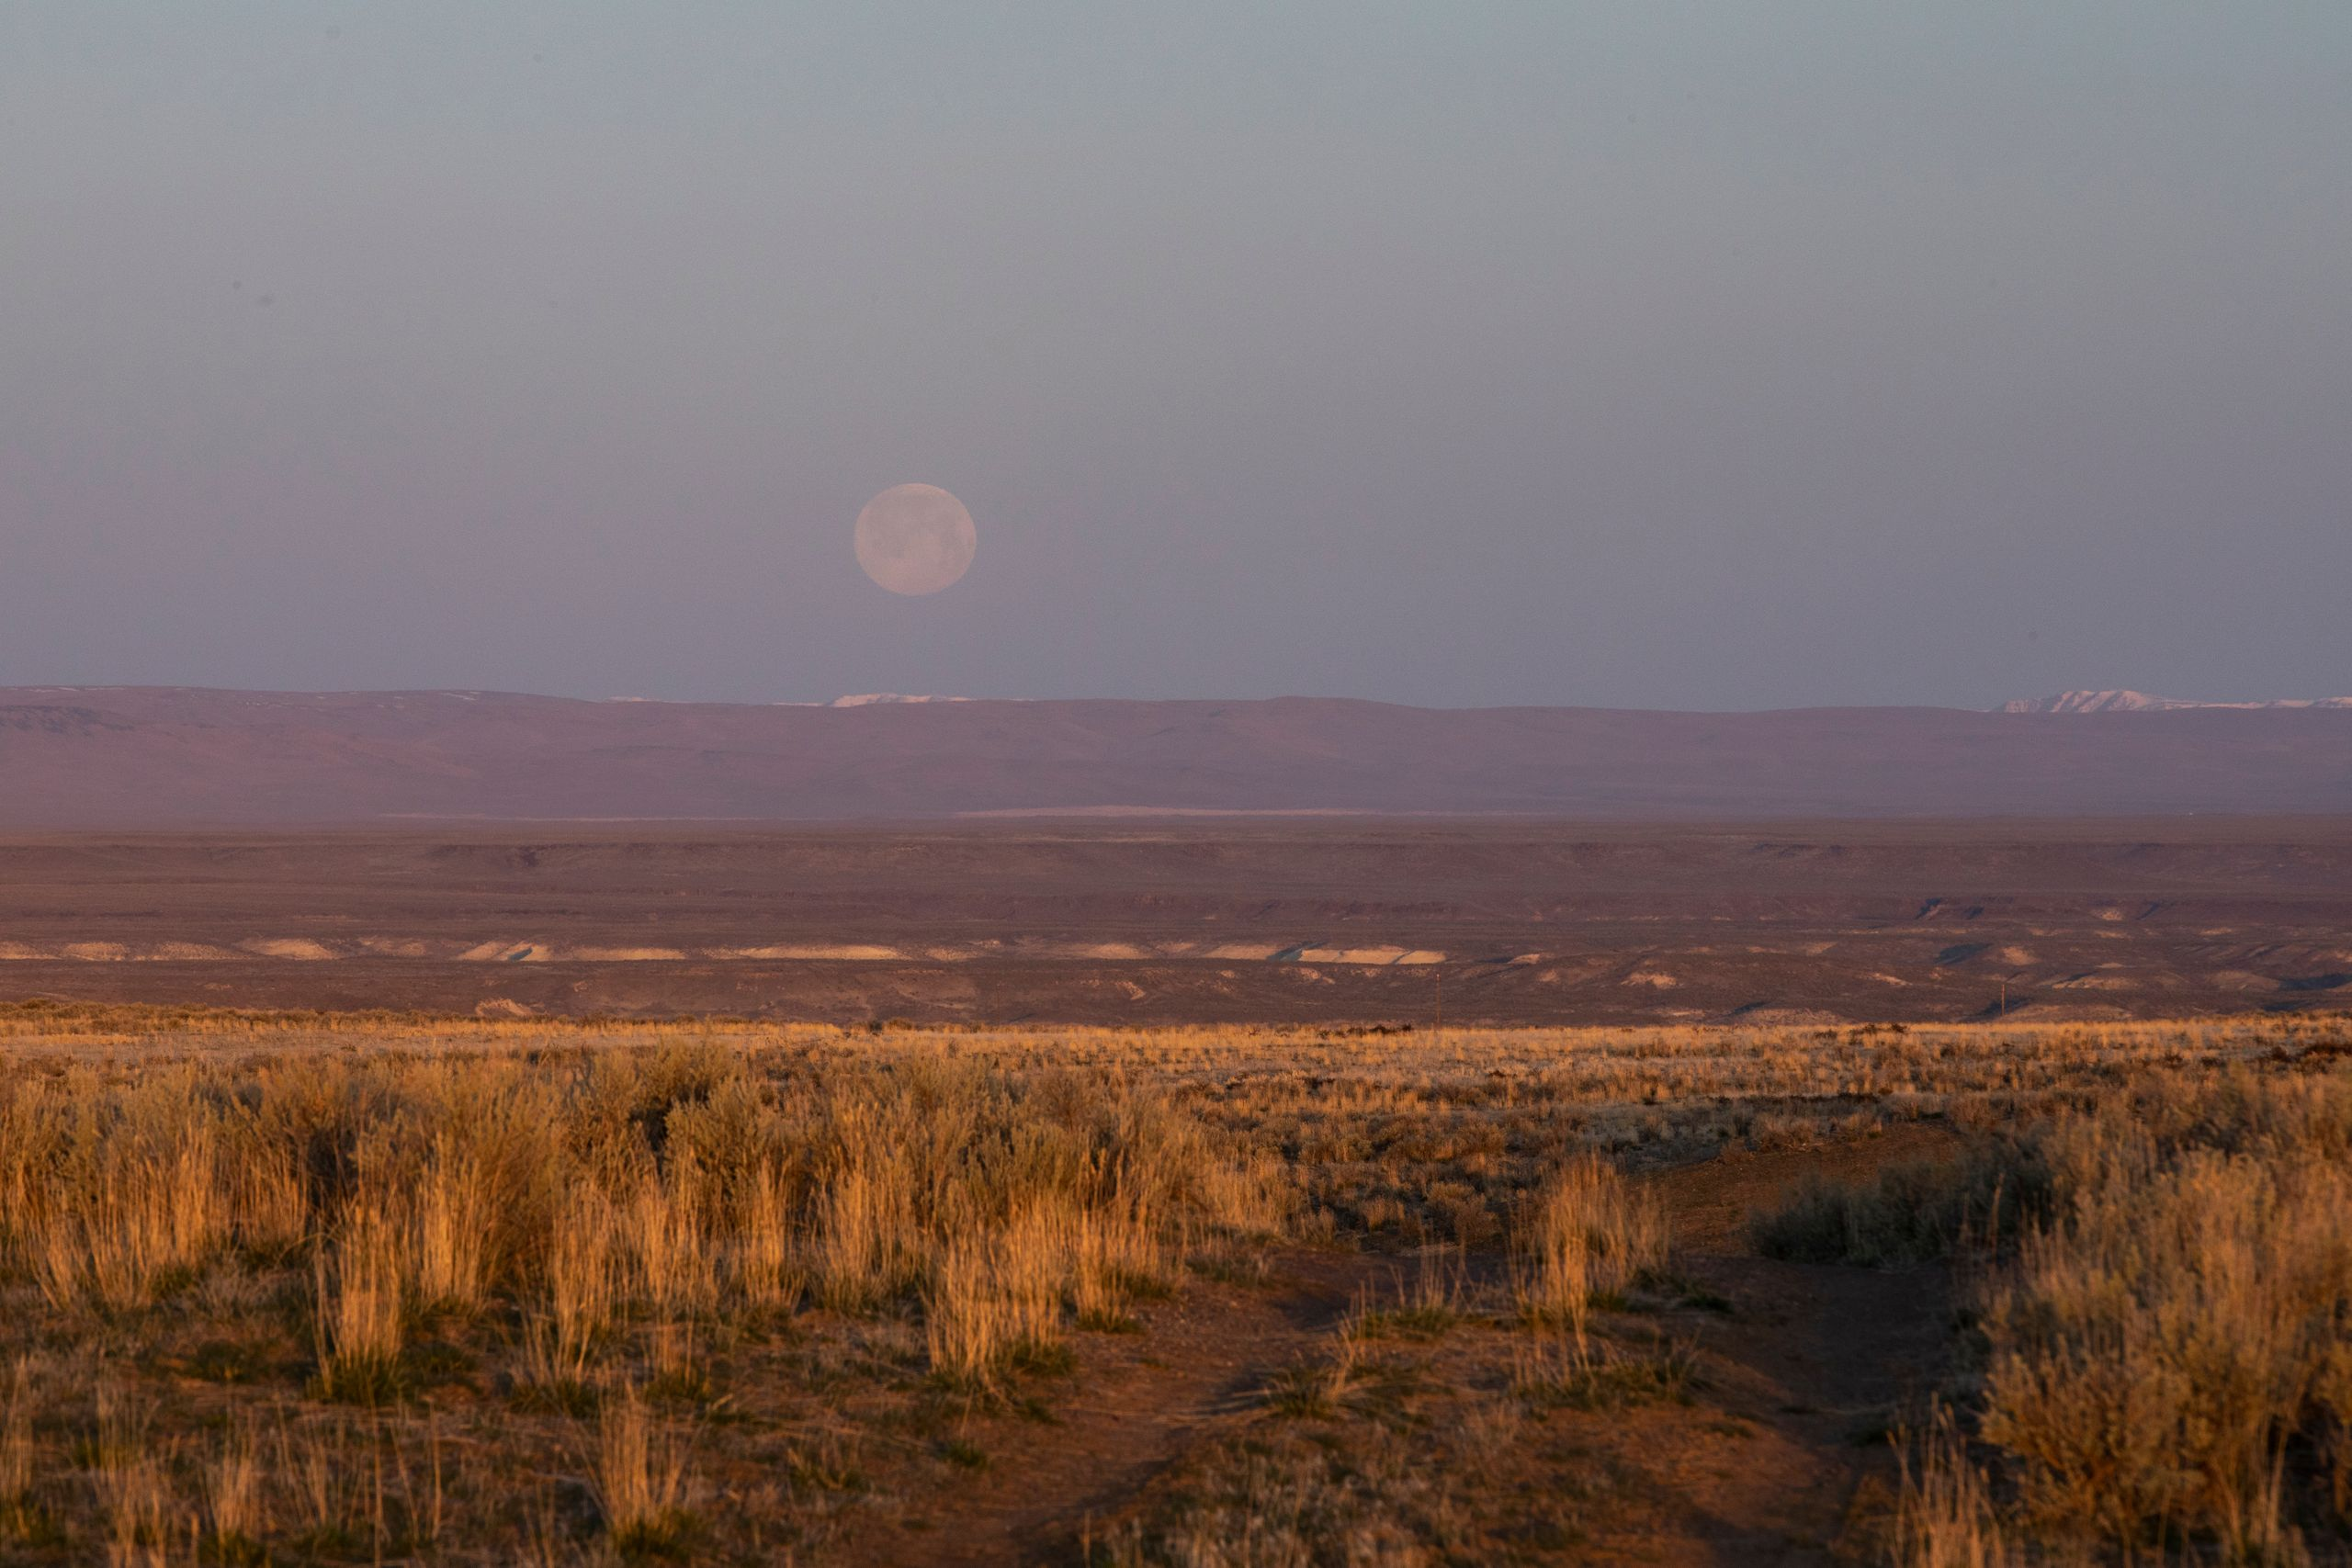 Sunrise over the sagebrush as the moon sets outside Rome, Oregon, on Sunday, March 28.